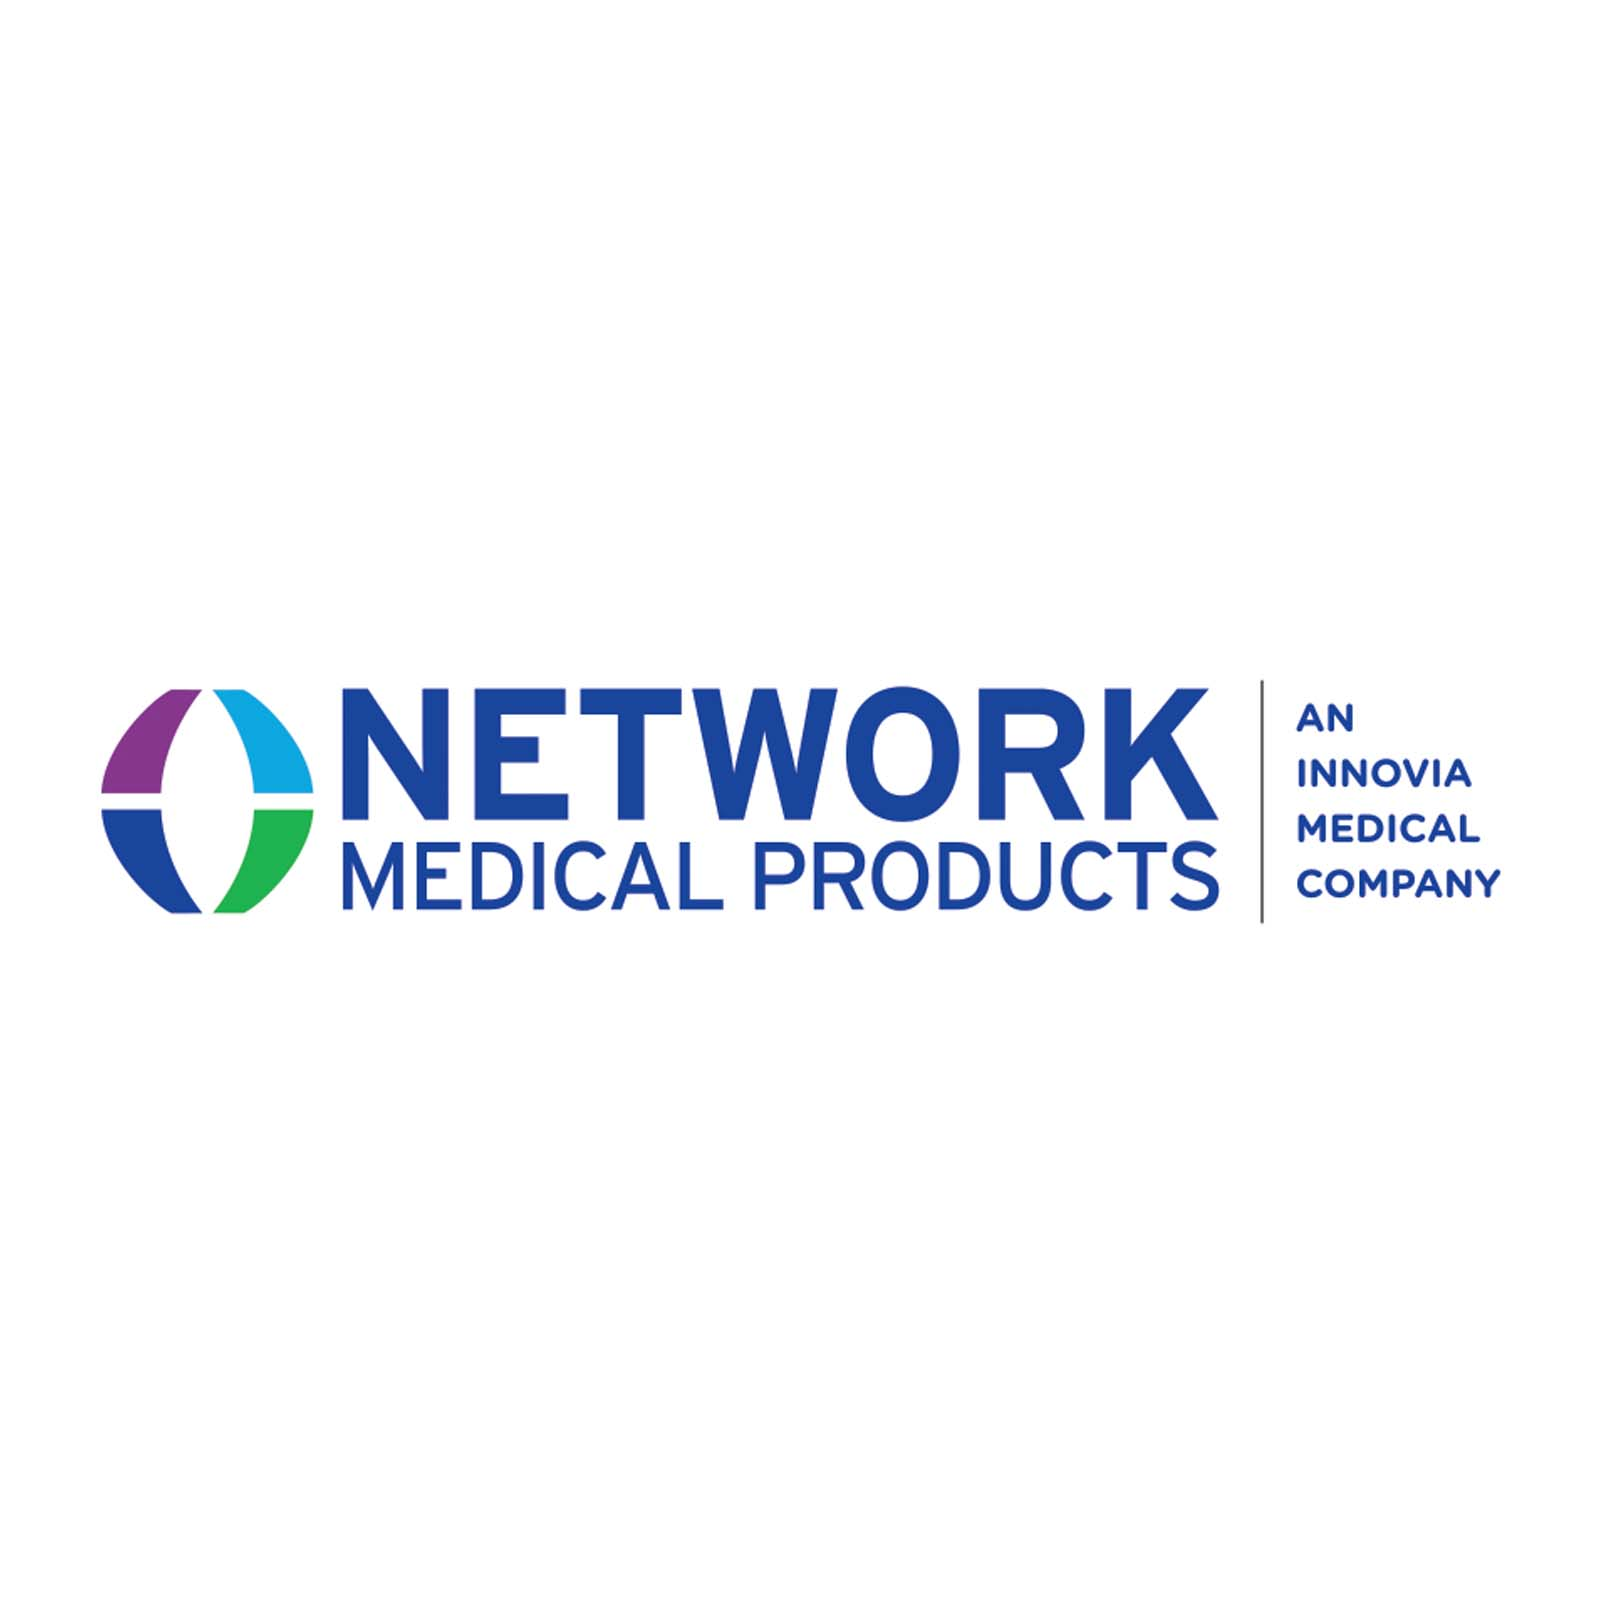 Network Medical Products Ltd. [33162]